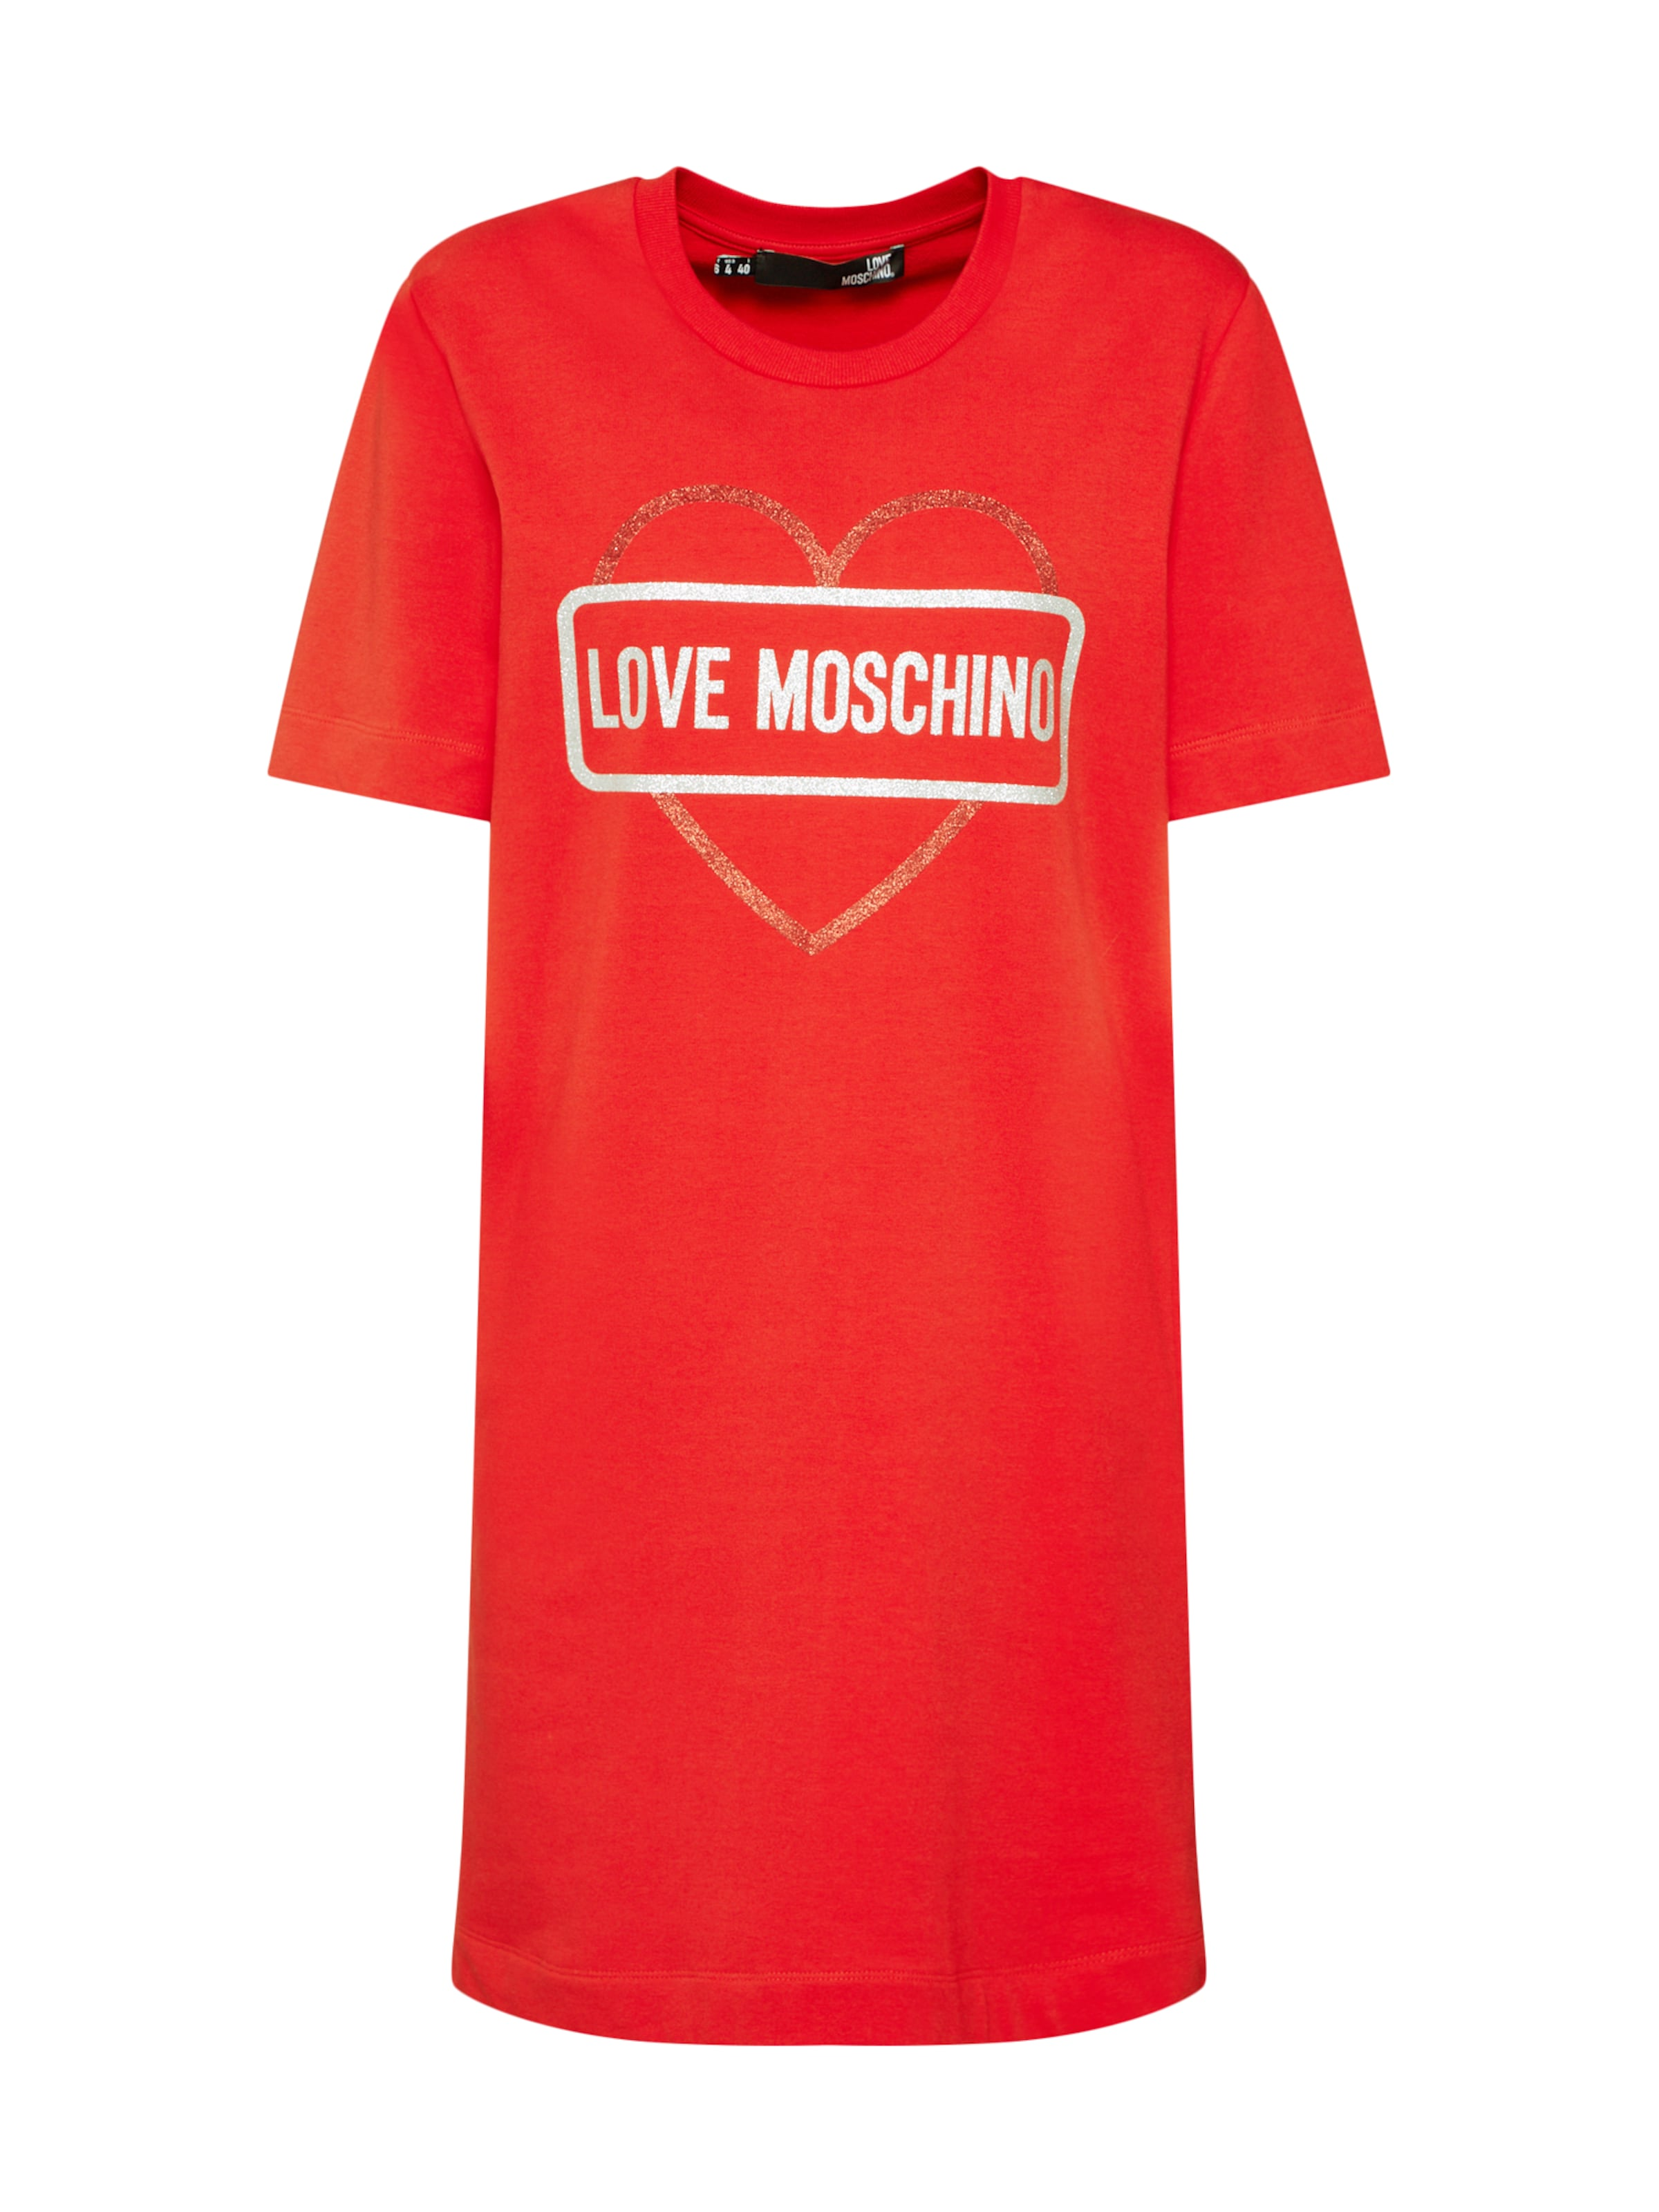 Moschino Kleid In Love 'abito' Rot YE9eWIbDH2